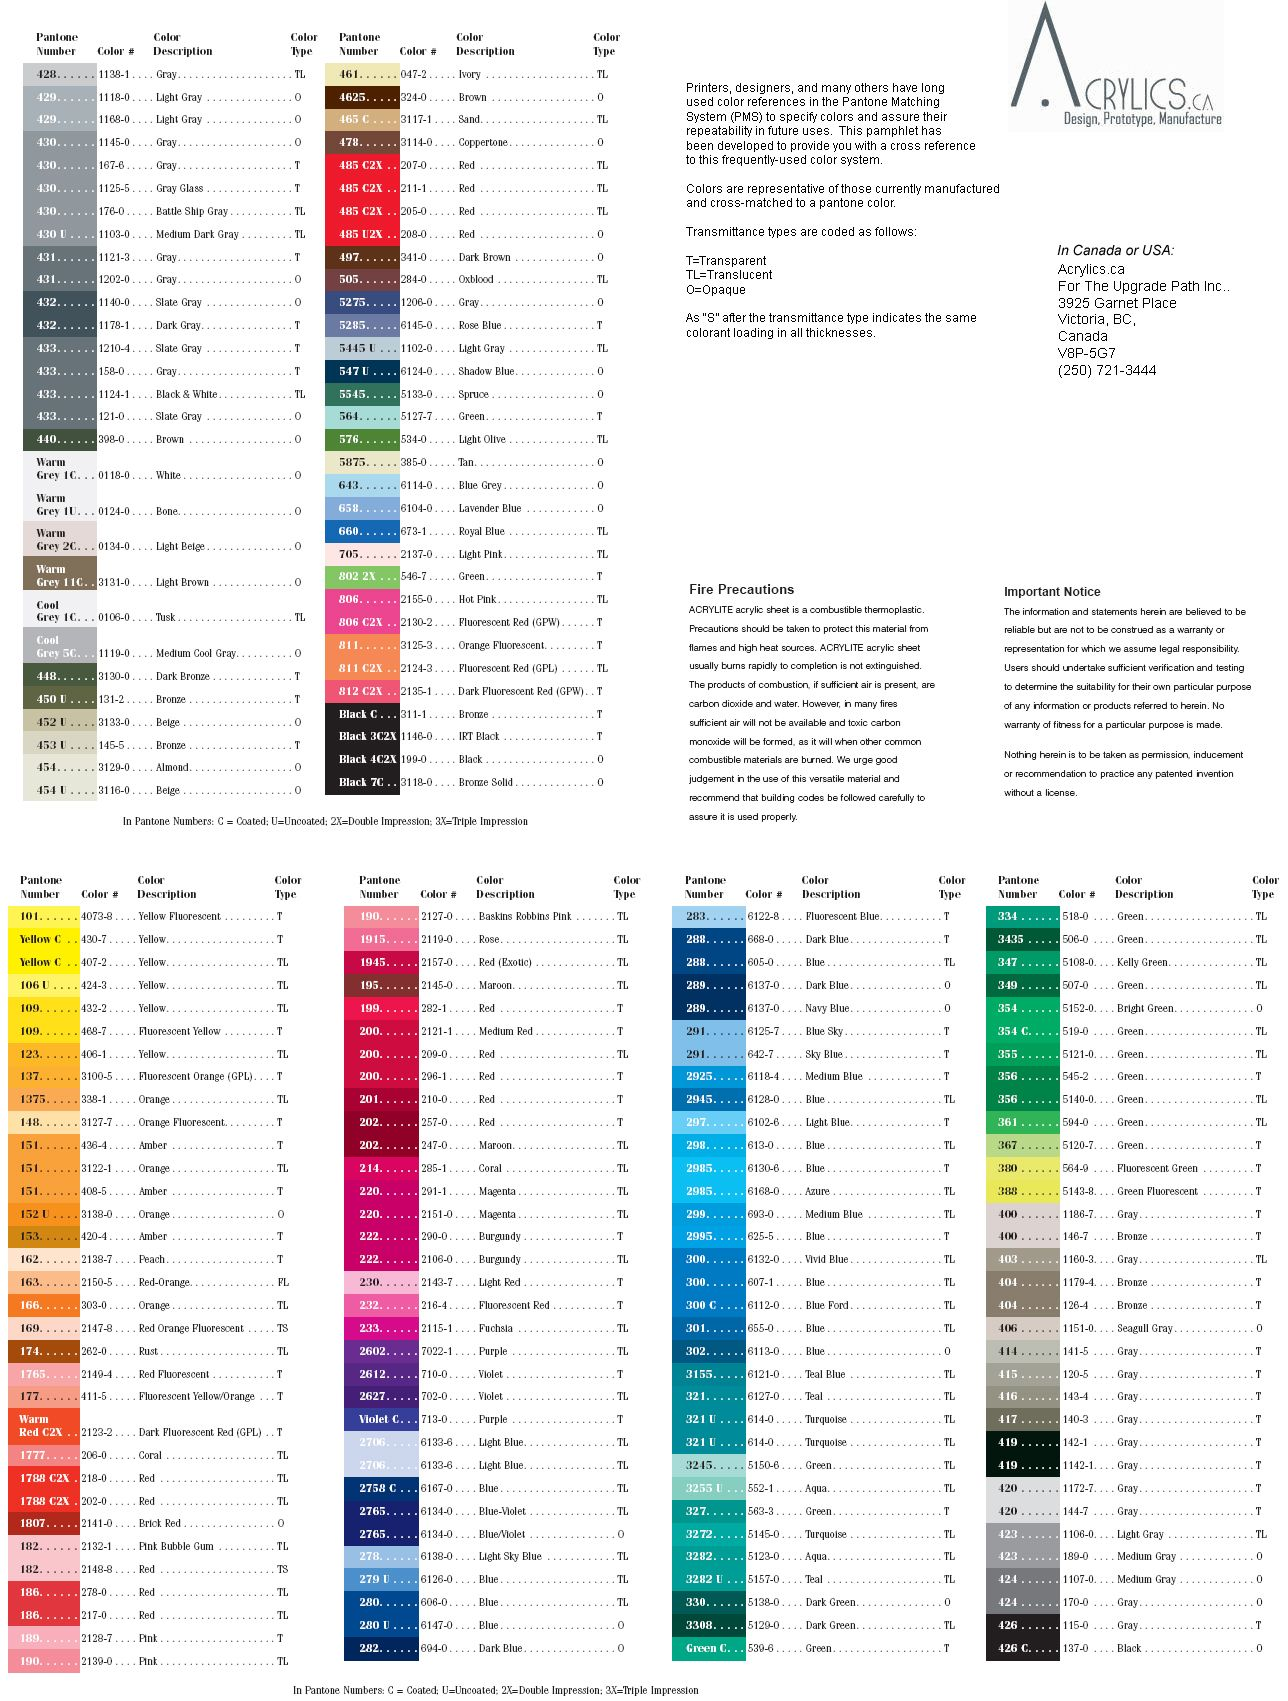 Pantone download cmyk rgb pms fee online pdf colour colour pantone download cmyk rgb pms fee online pdf pantone color chartcmyk geenschuldenfo Image collections